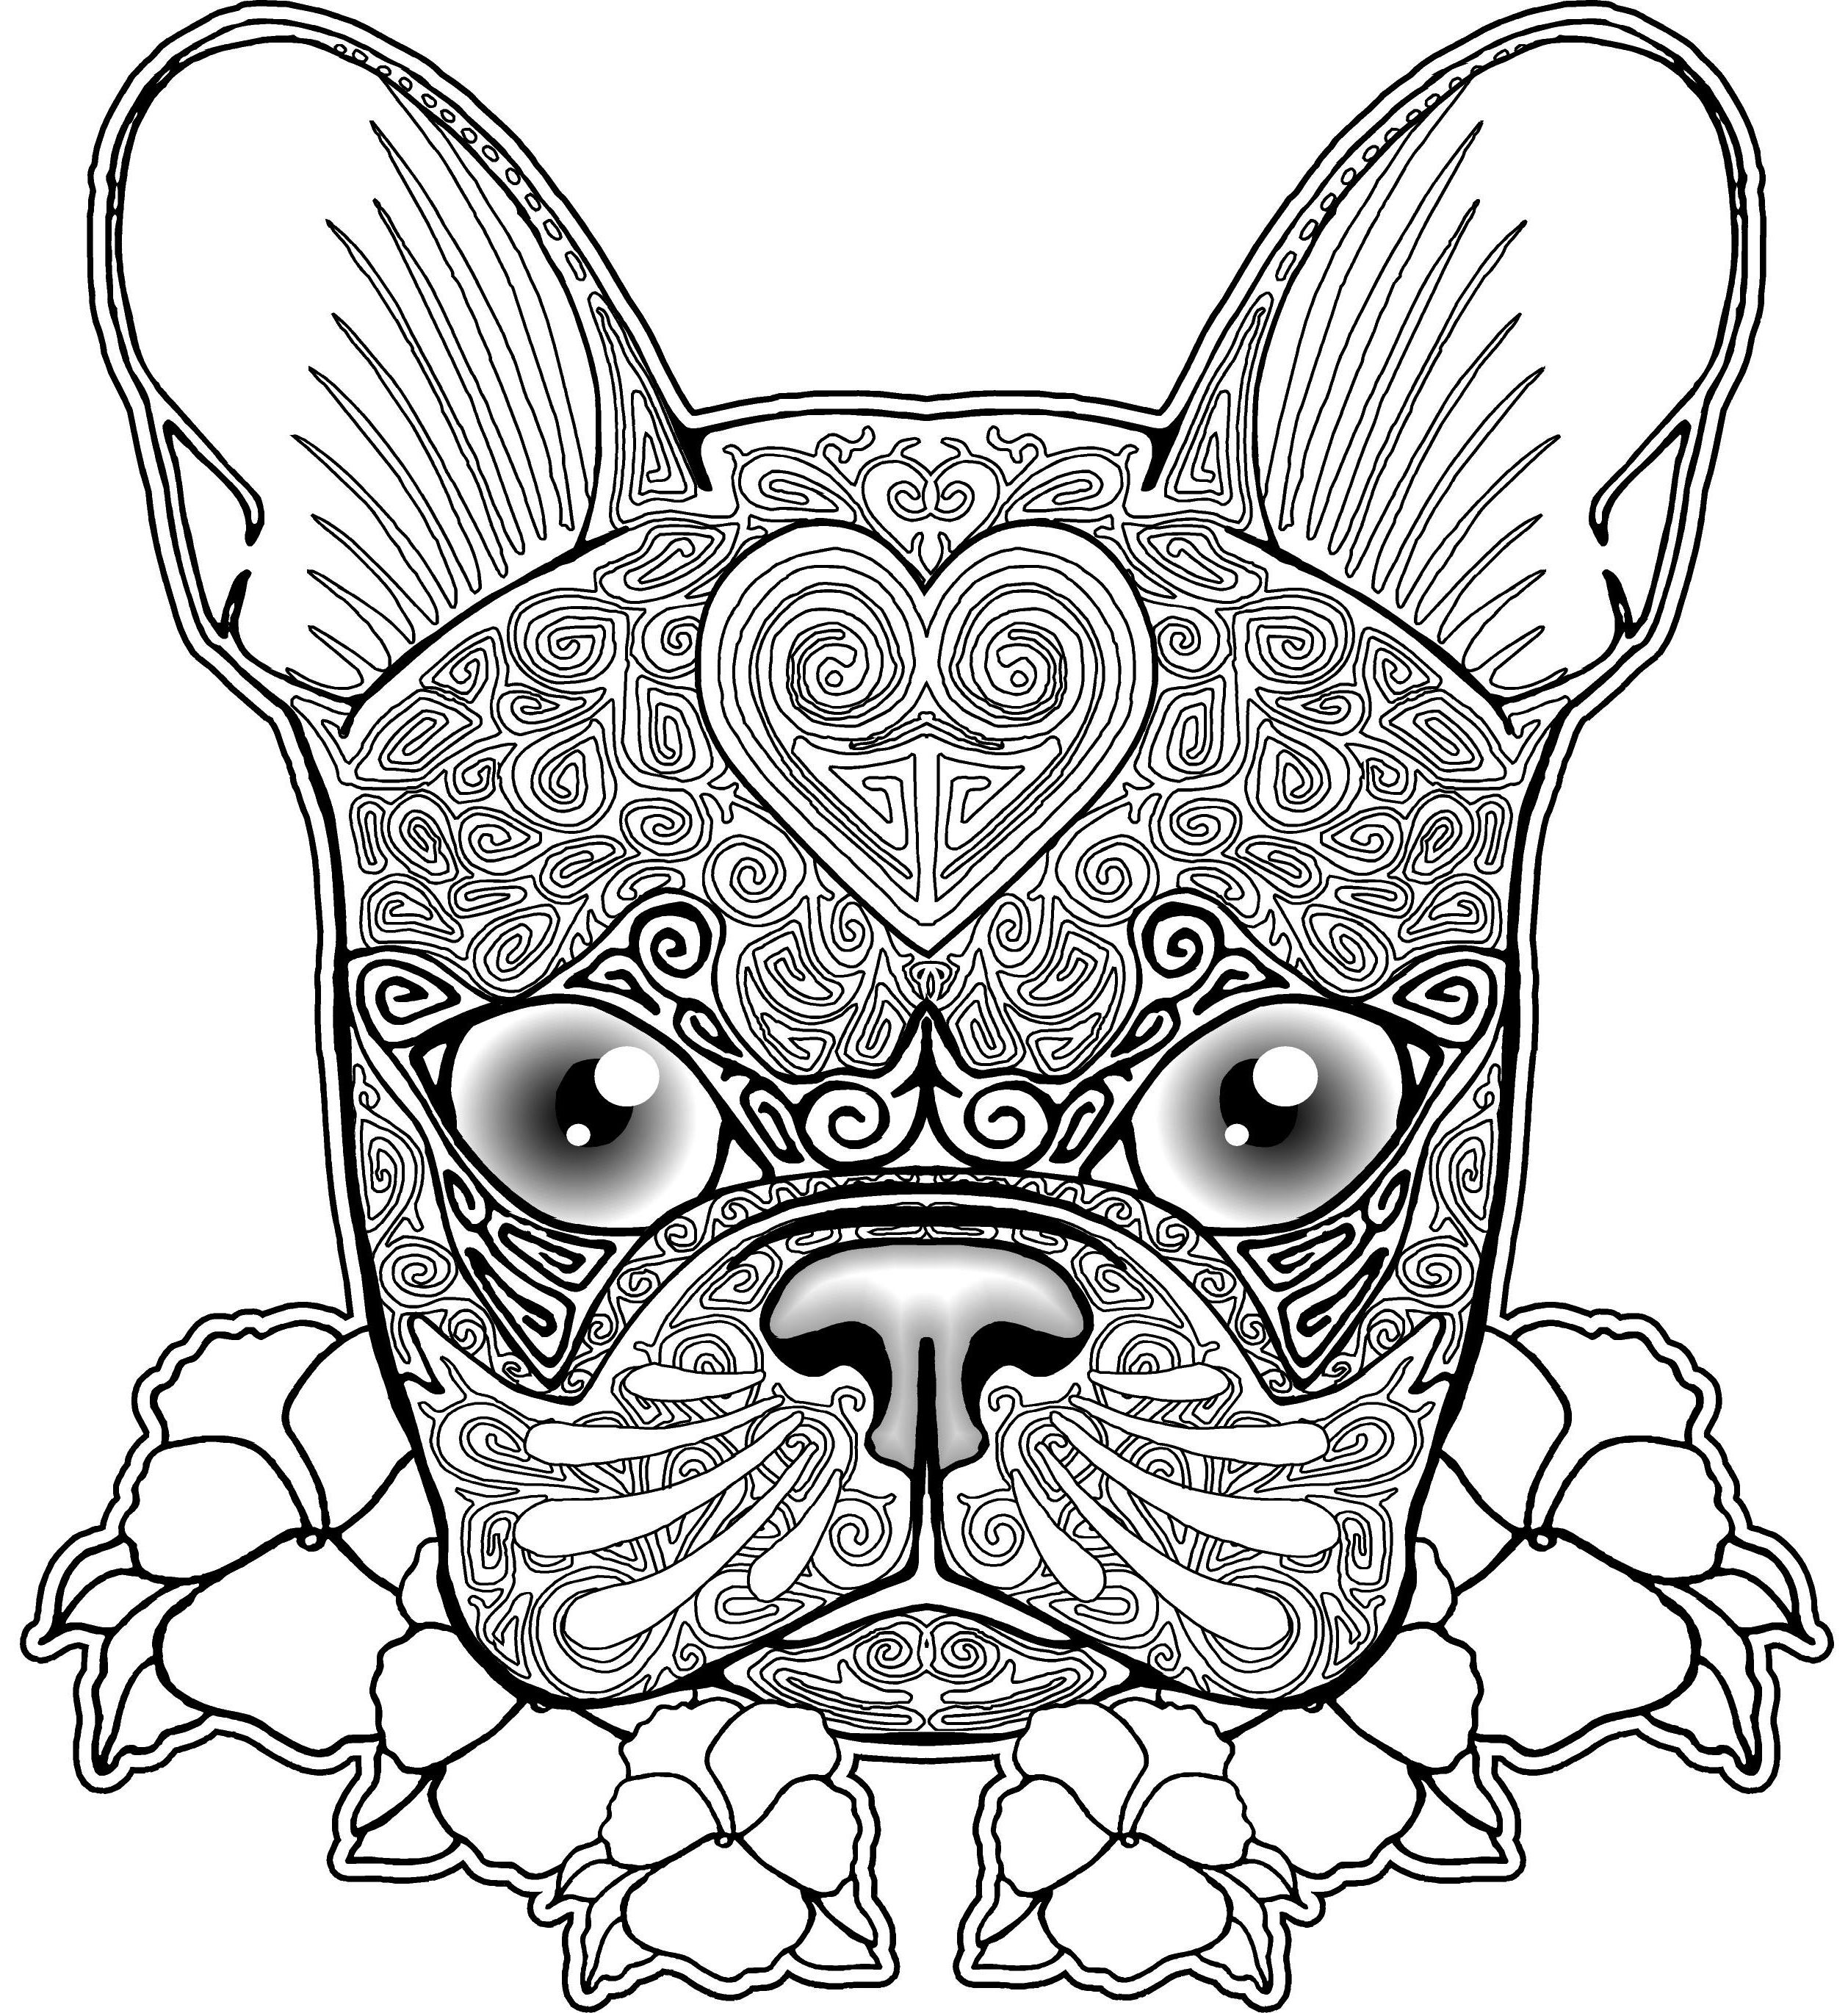 free bulldog zentangle coloring page for adults This will